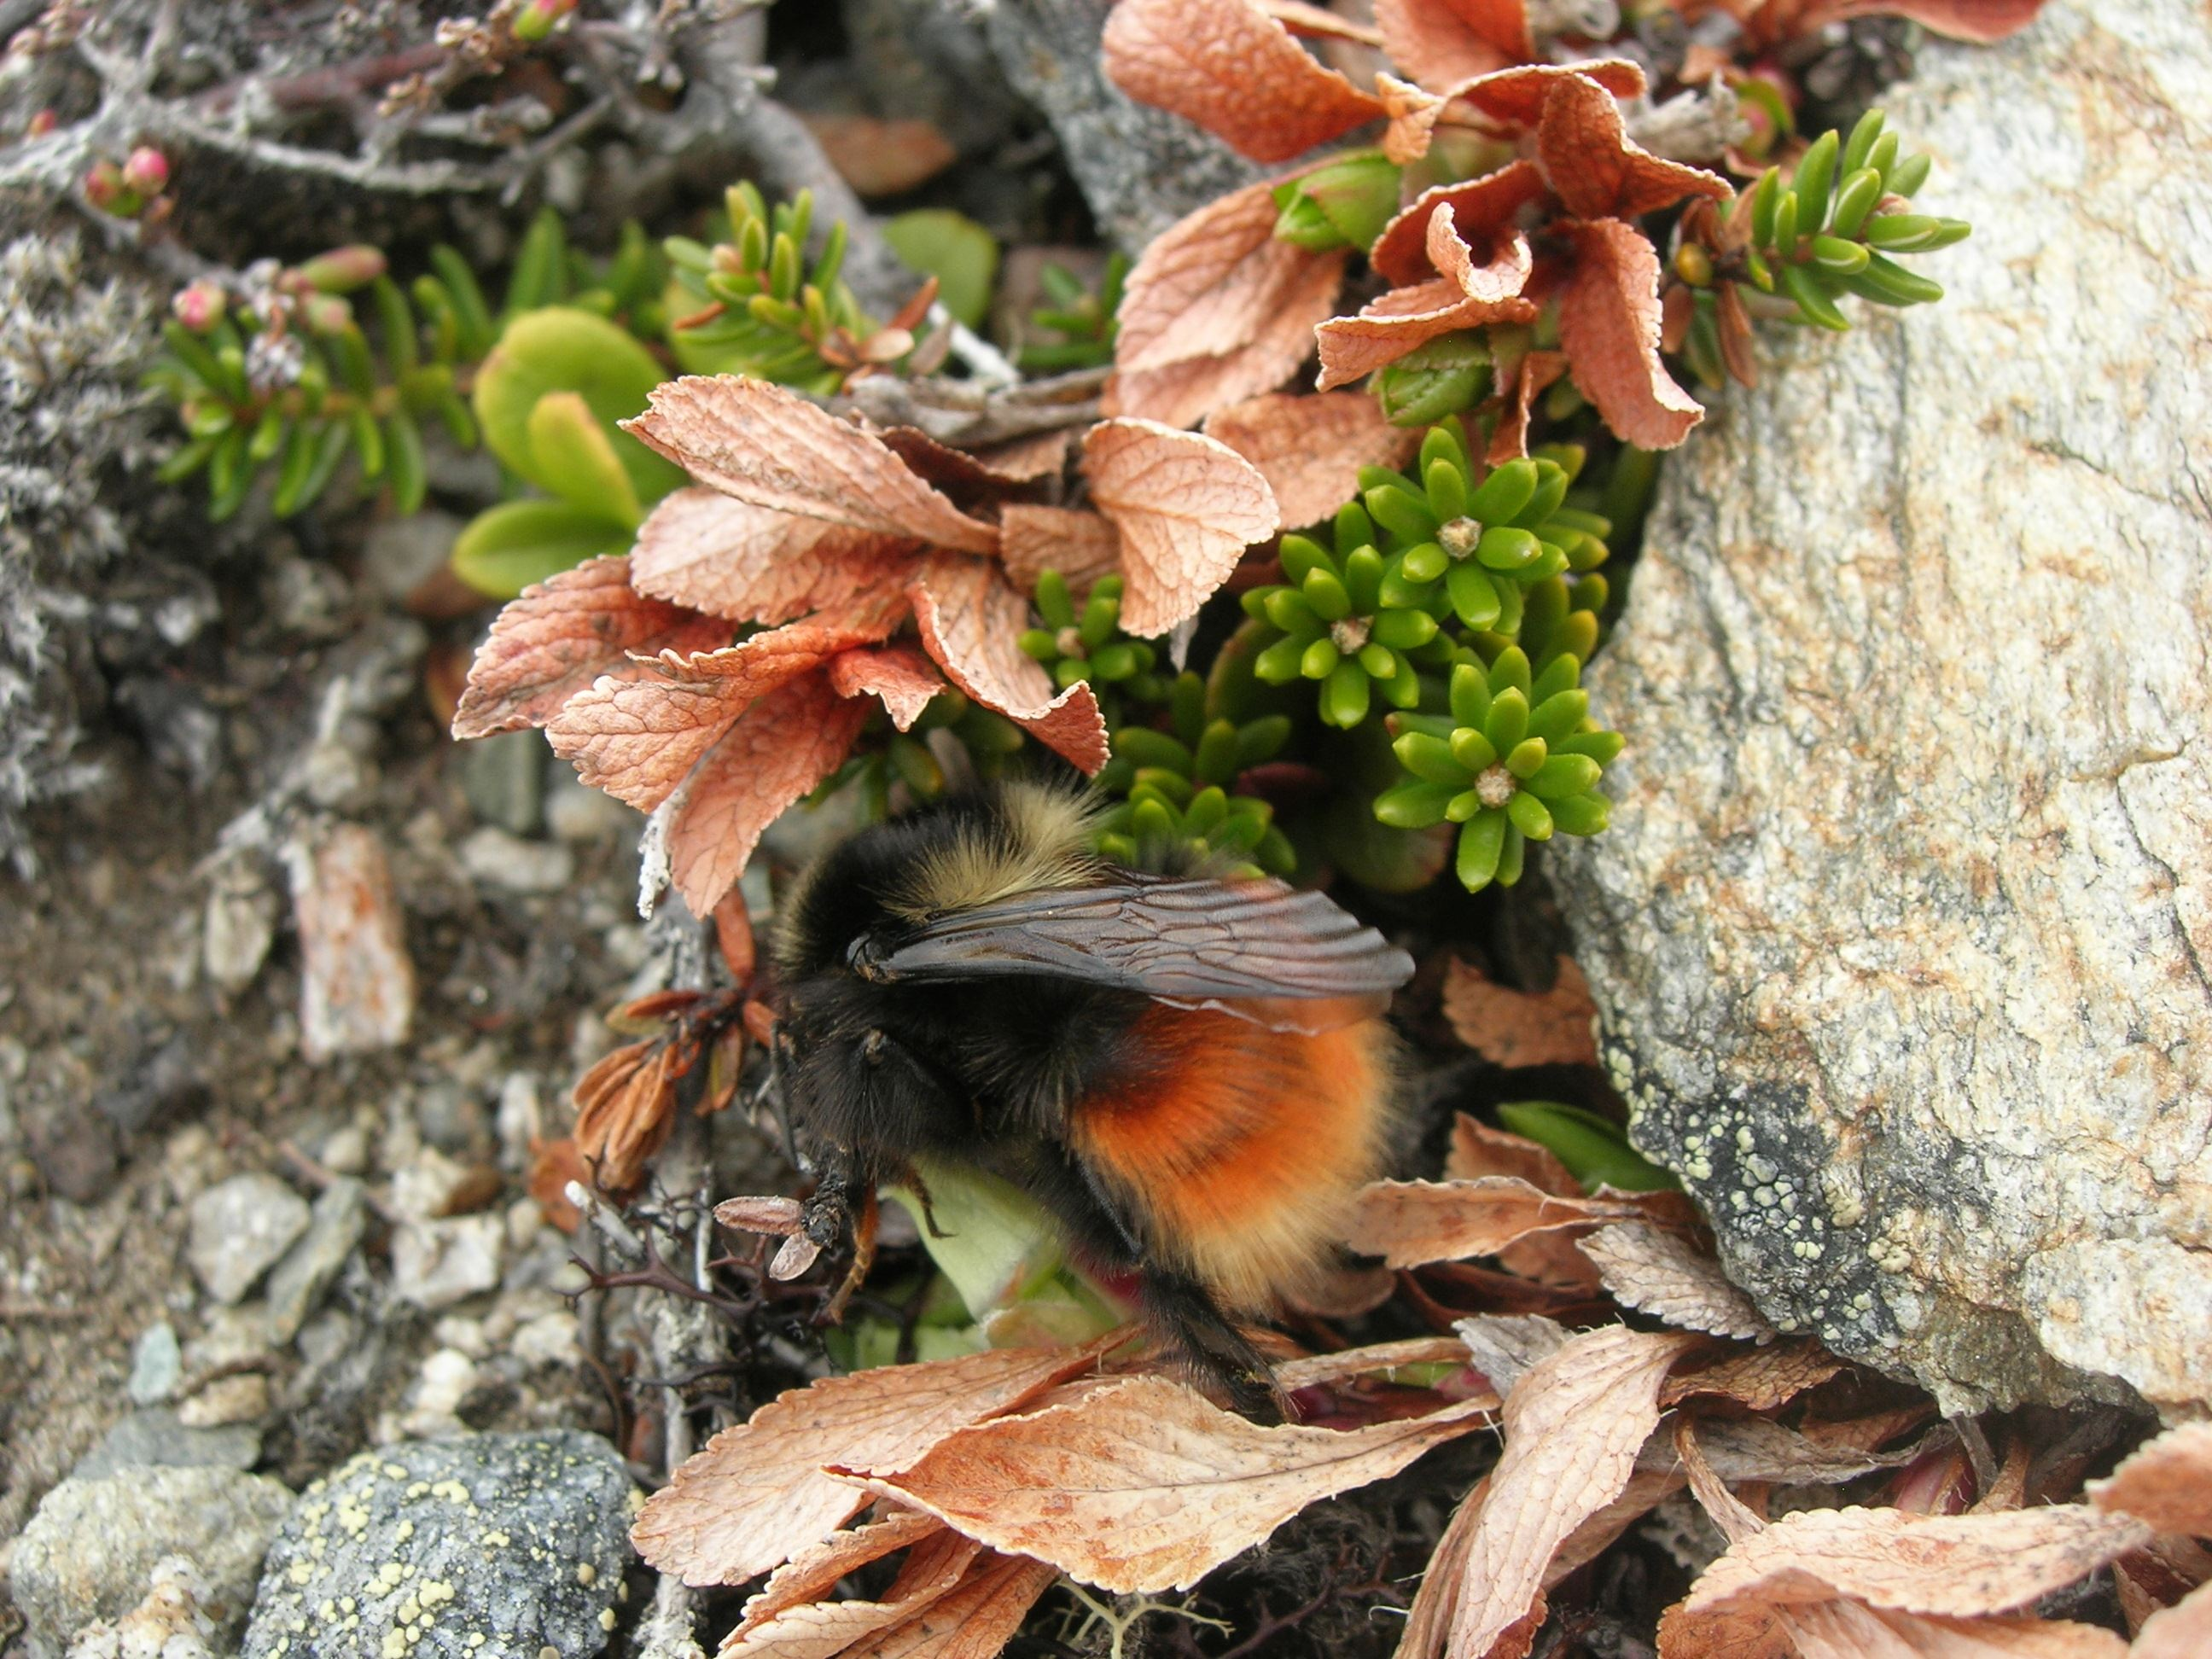 Guided family tour among bumblebees and plants